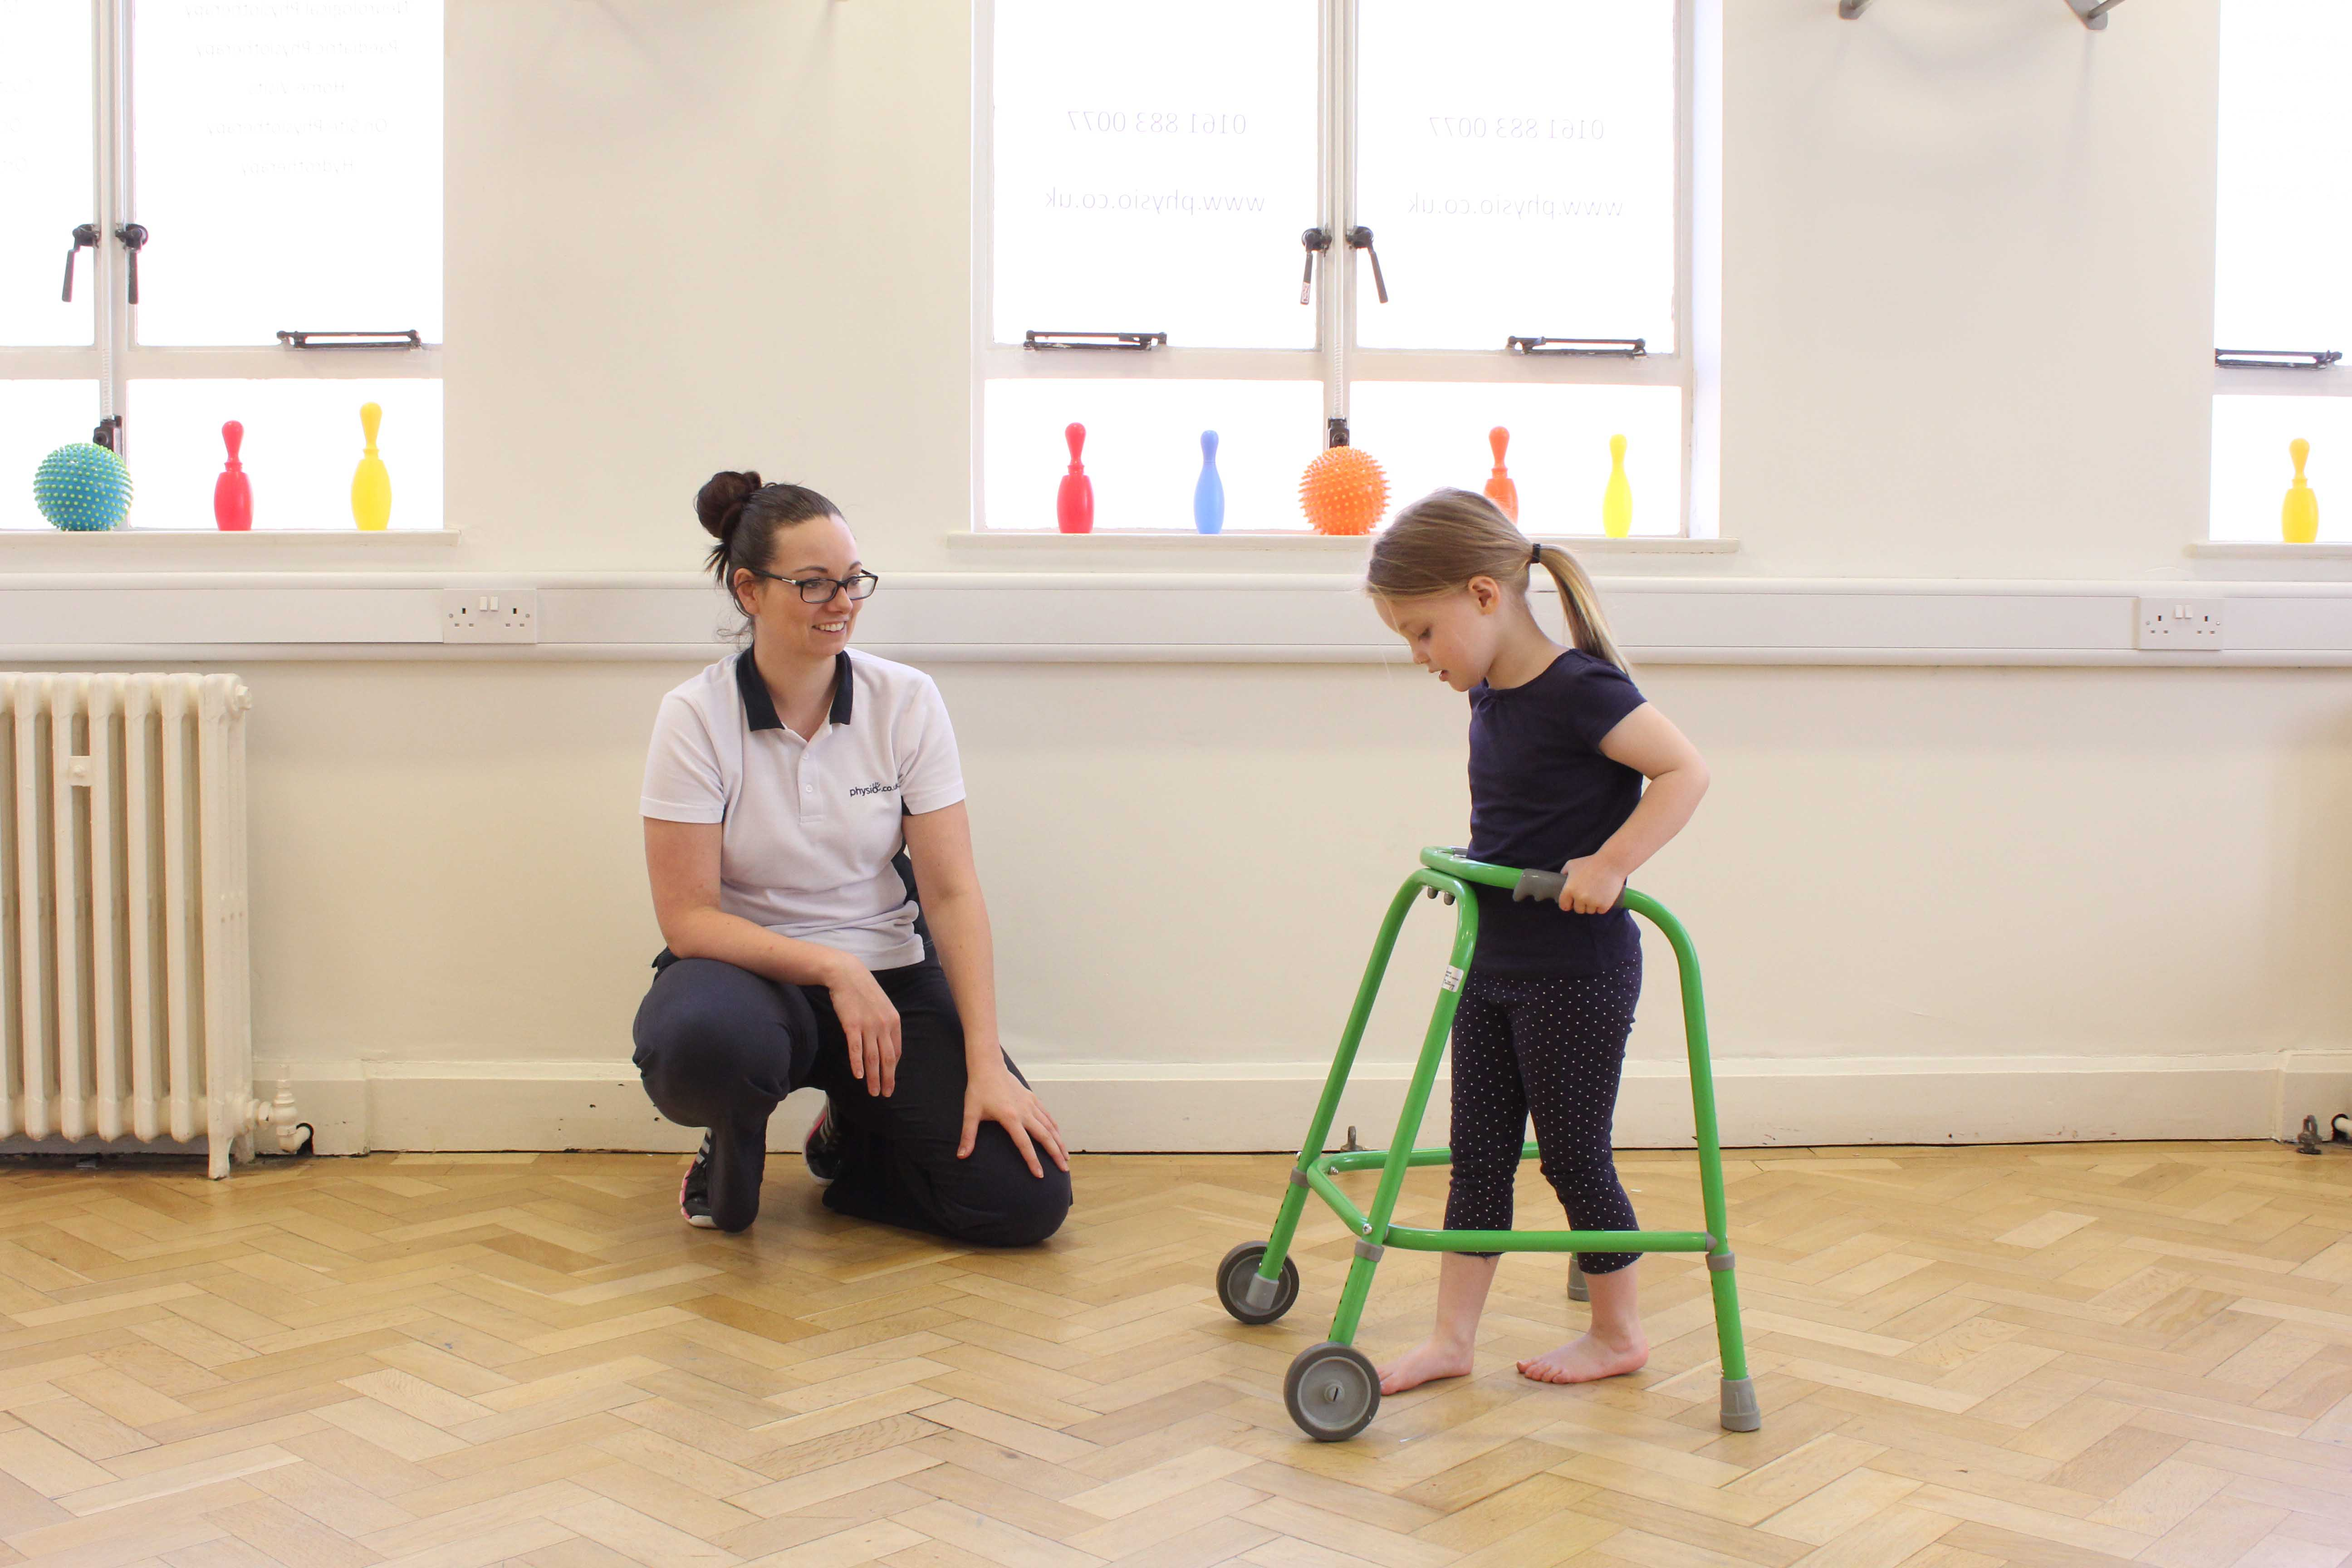 Gait re-education exercises supervised by experienced physiotherapist